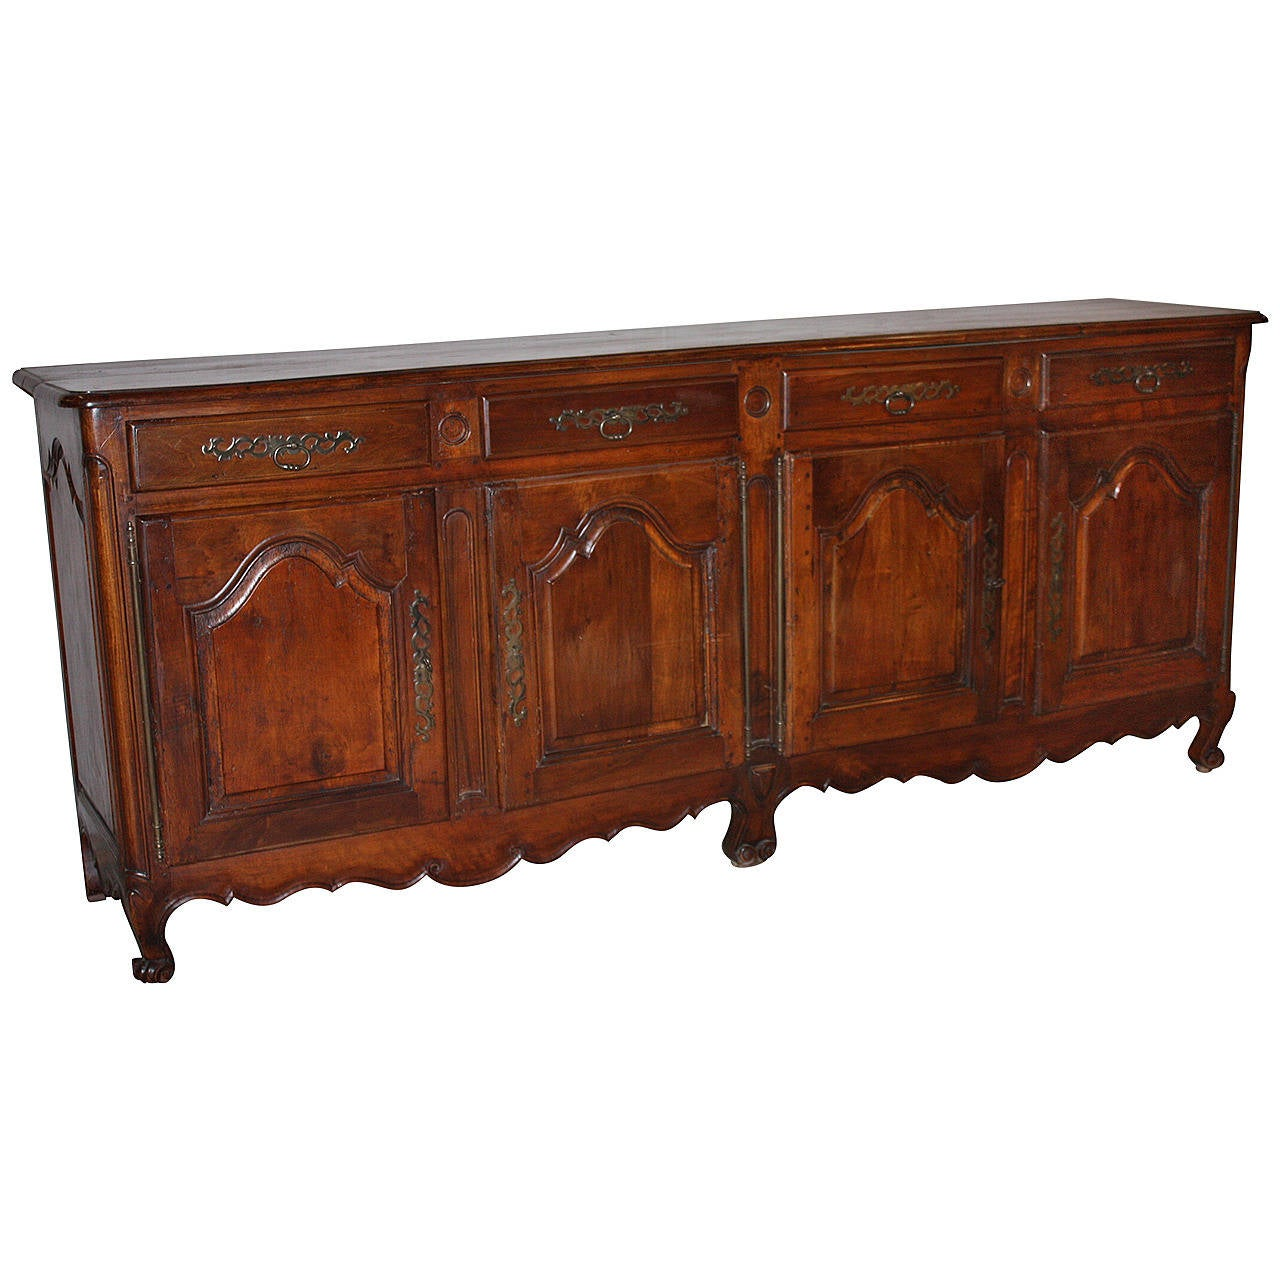 french walnut enfilade at 1stdibs. Black Bedroom Furniture Sets. Home Design Ideas